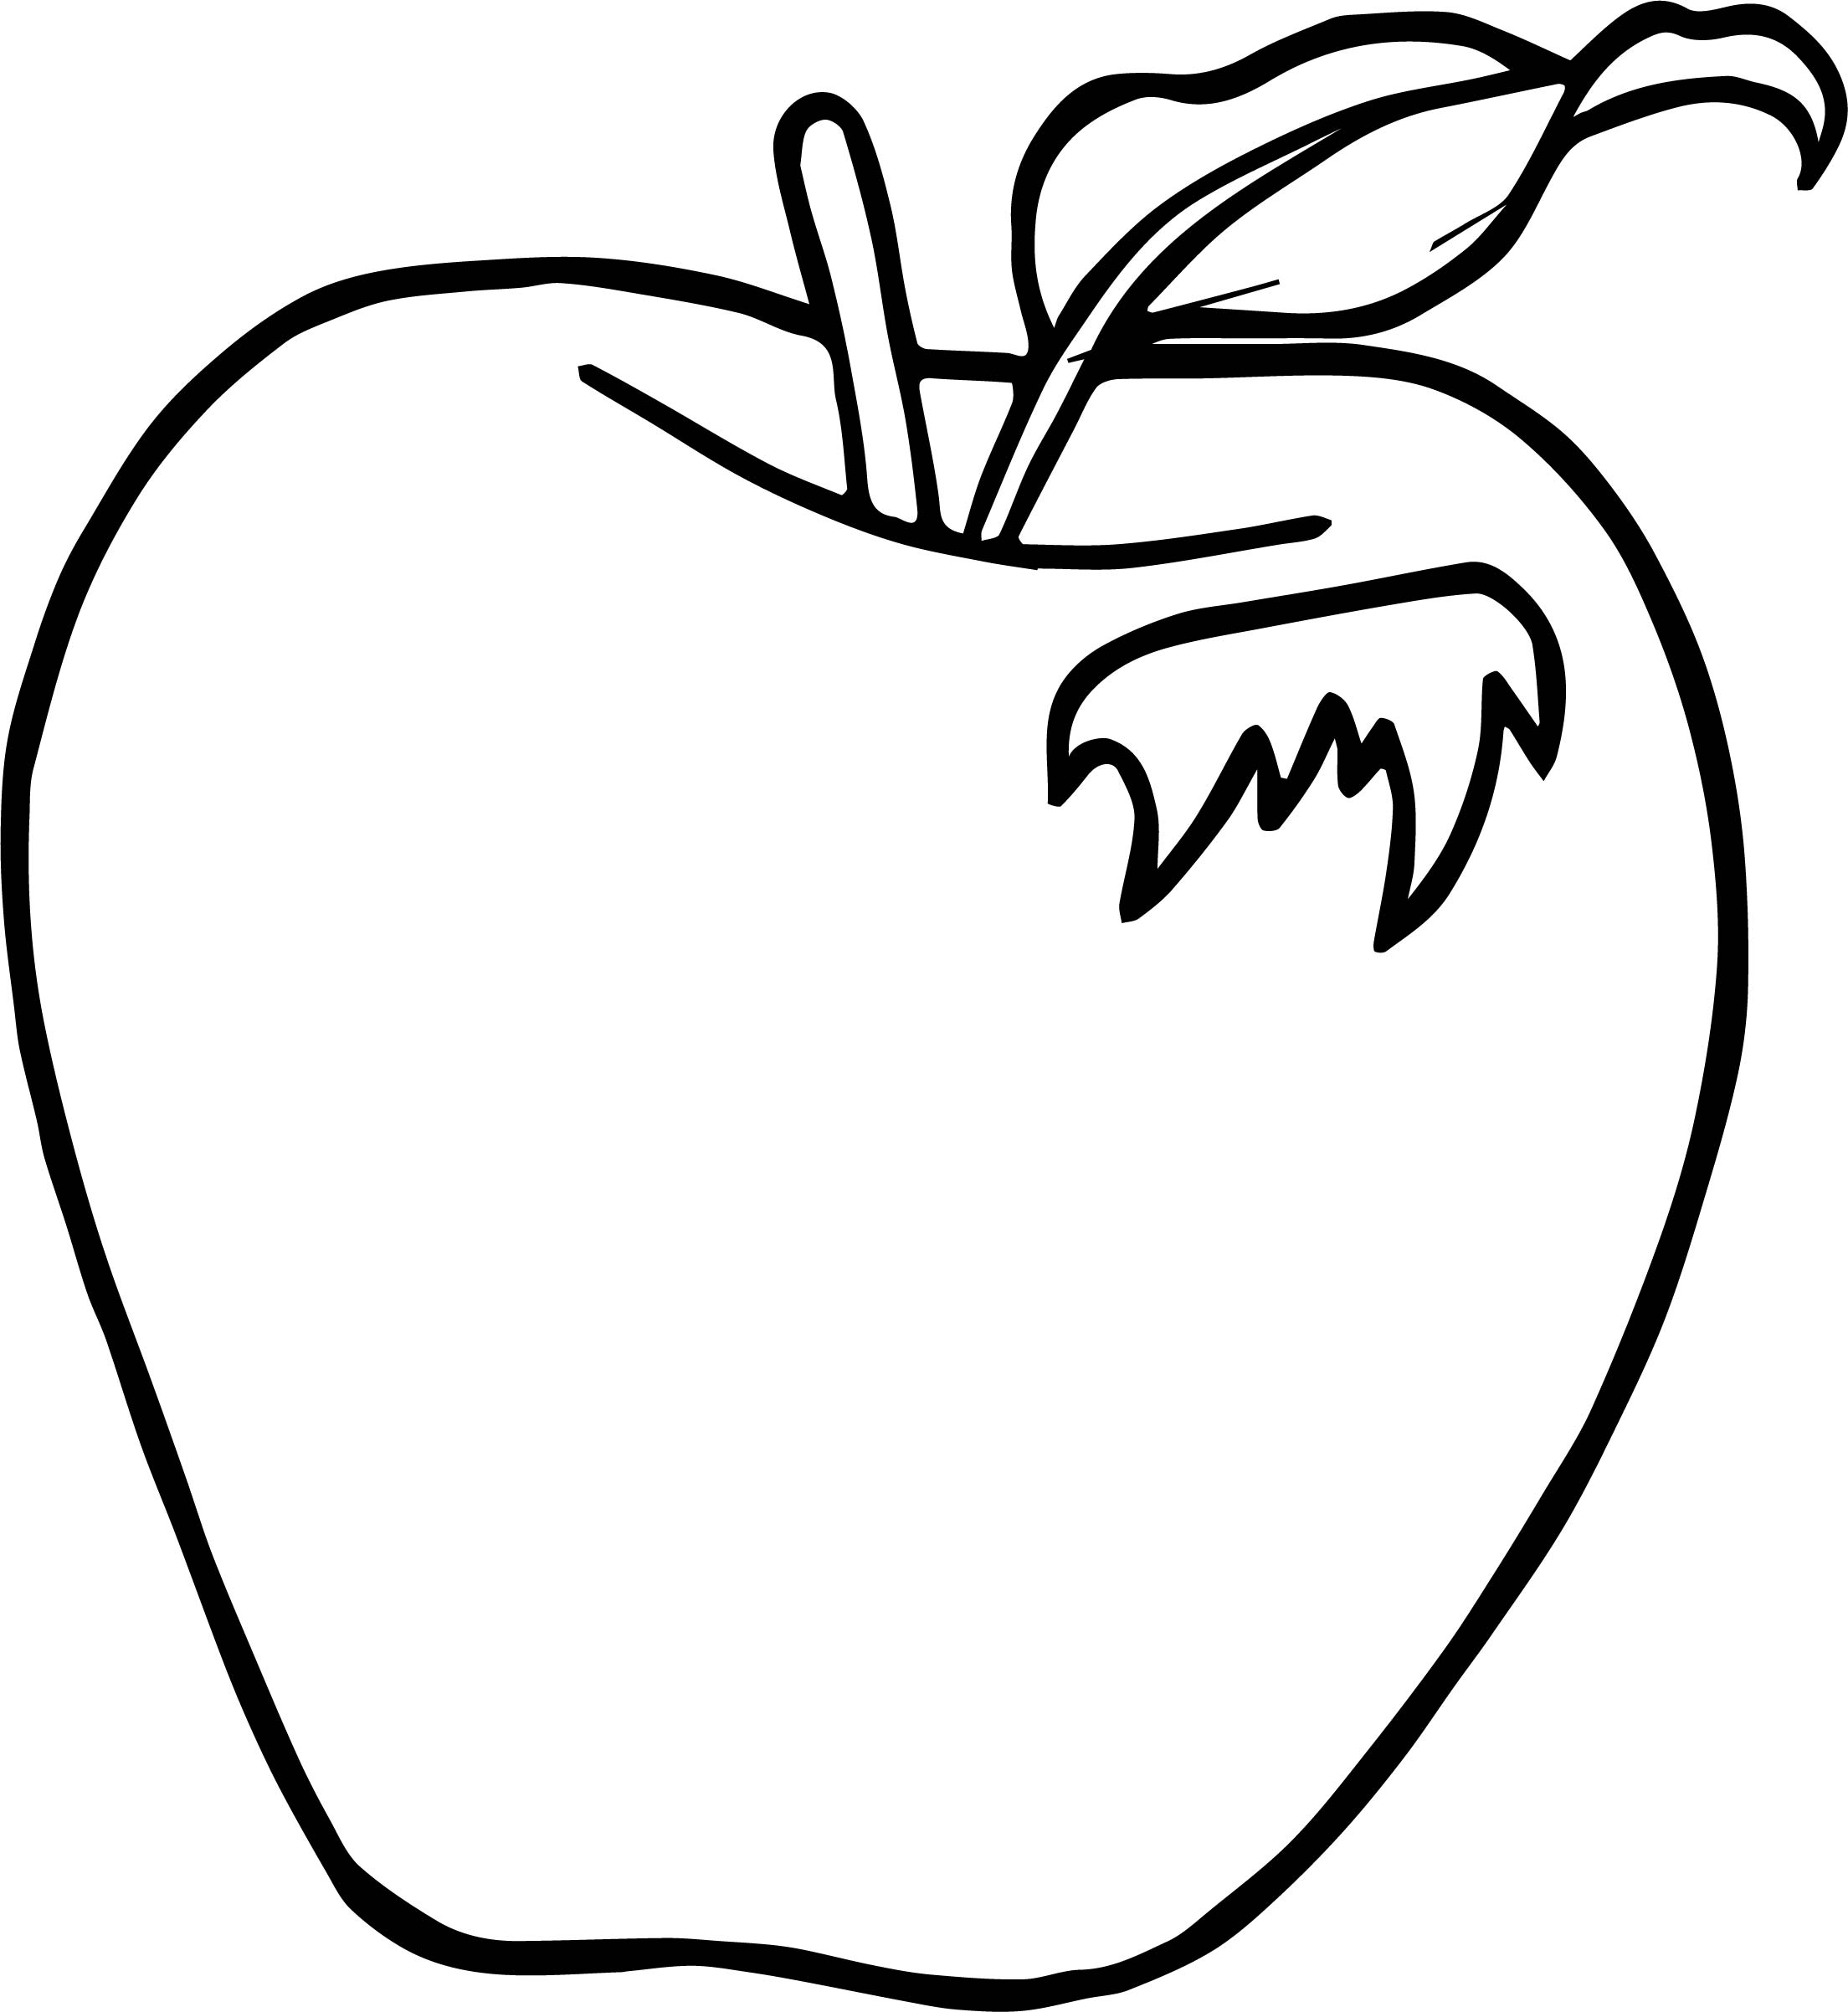 Apple Tree Leaf Half Cutted And Whole Coloring Page